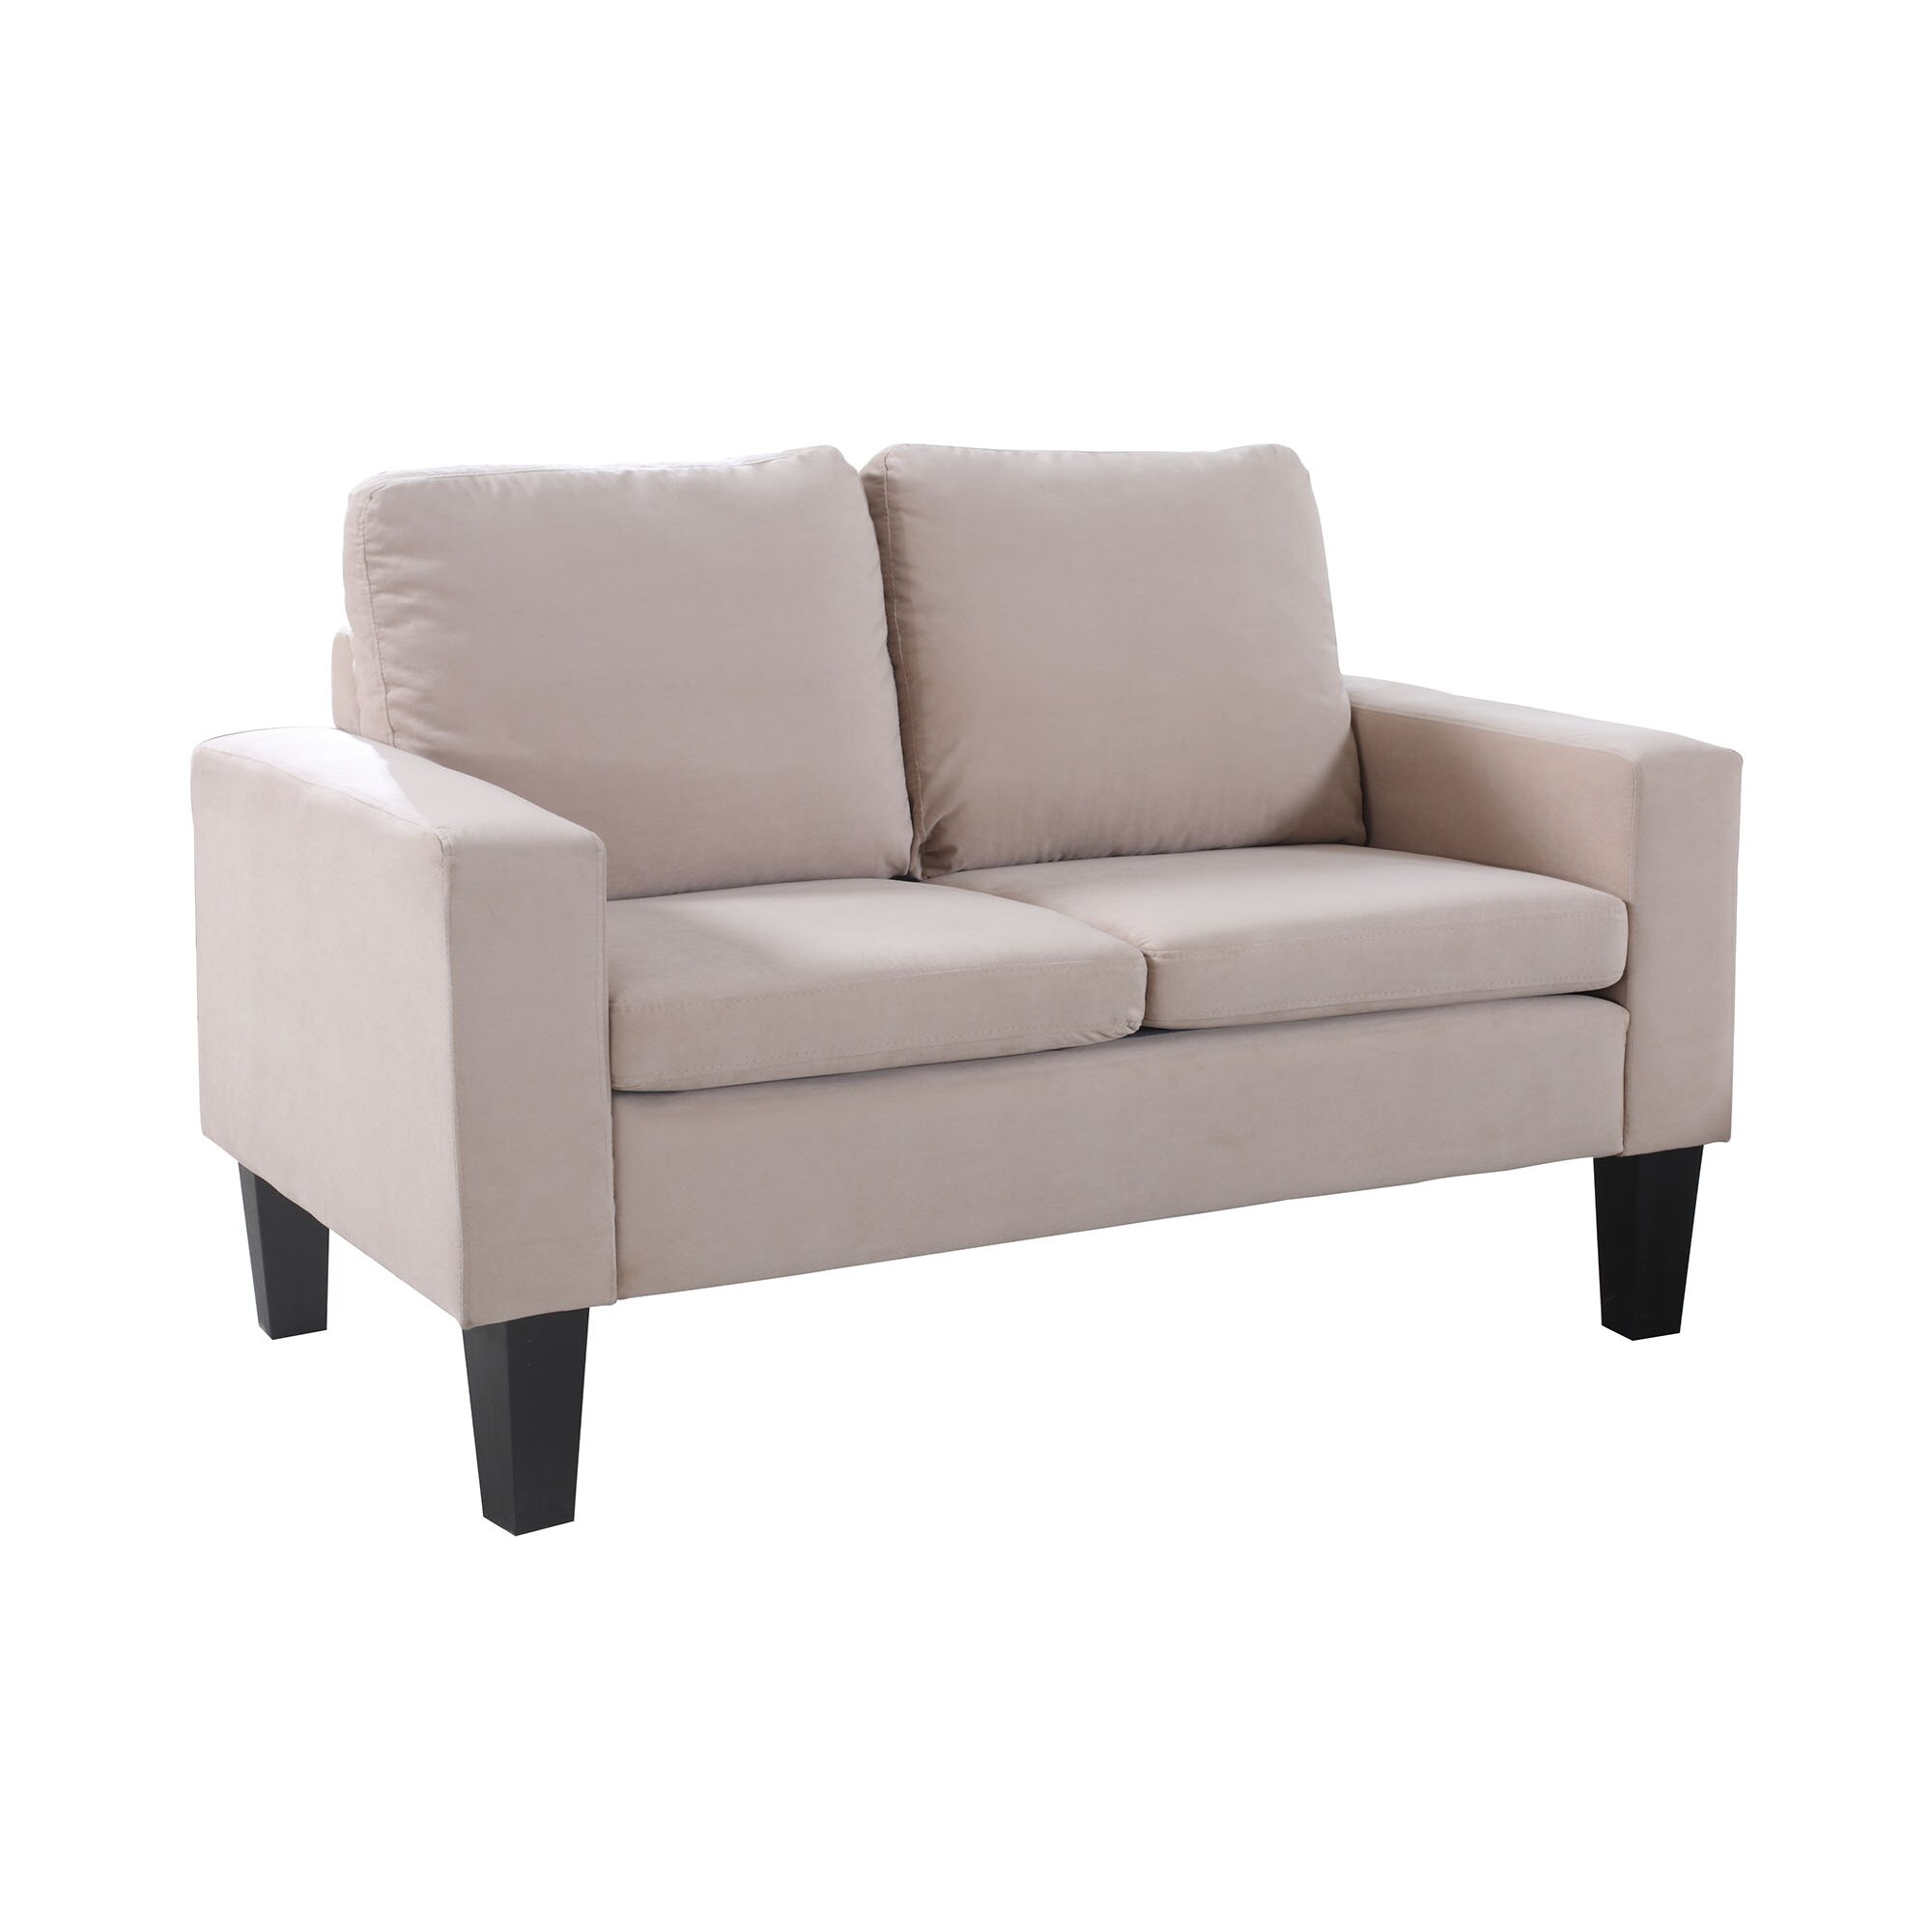 Nathanielhome Sarah Loveseat Amp Reviews Wayfair